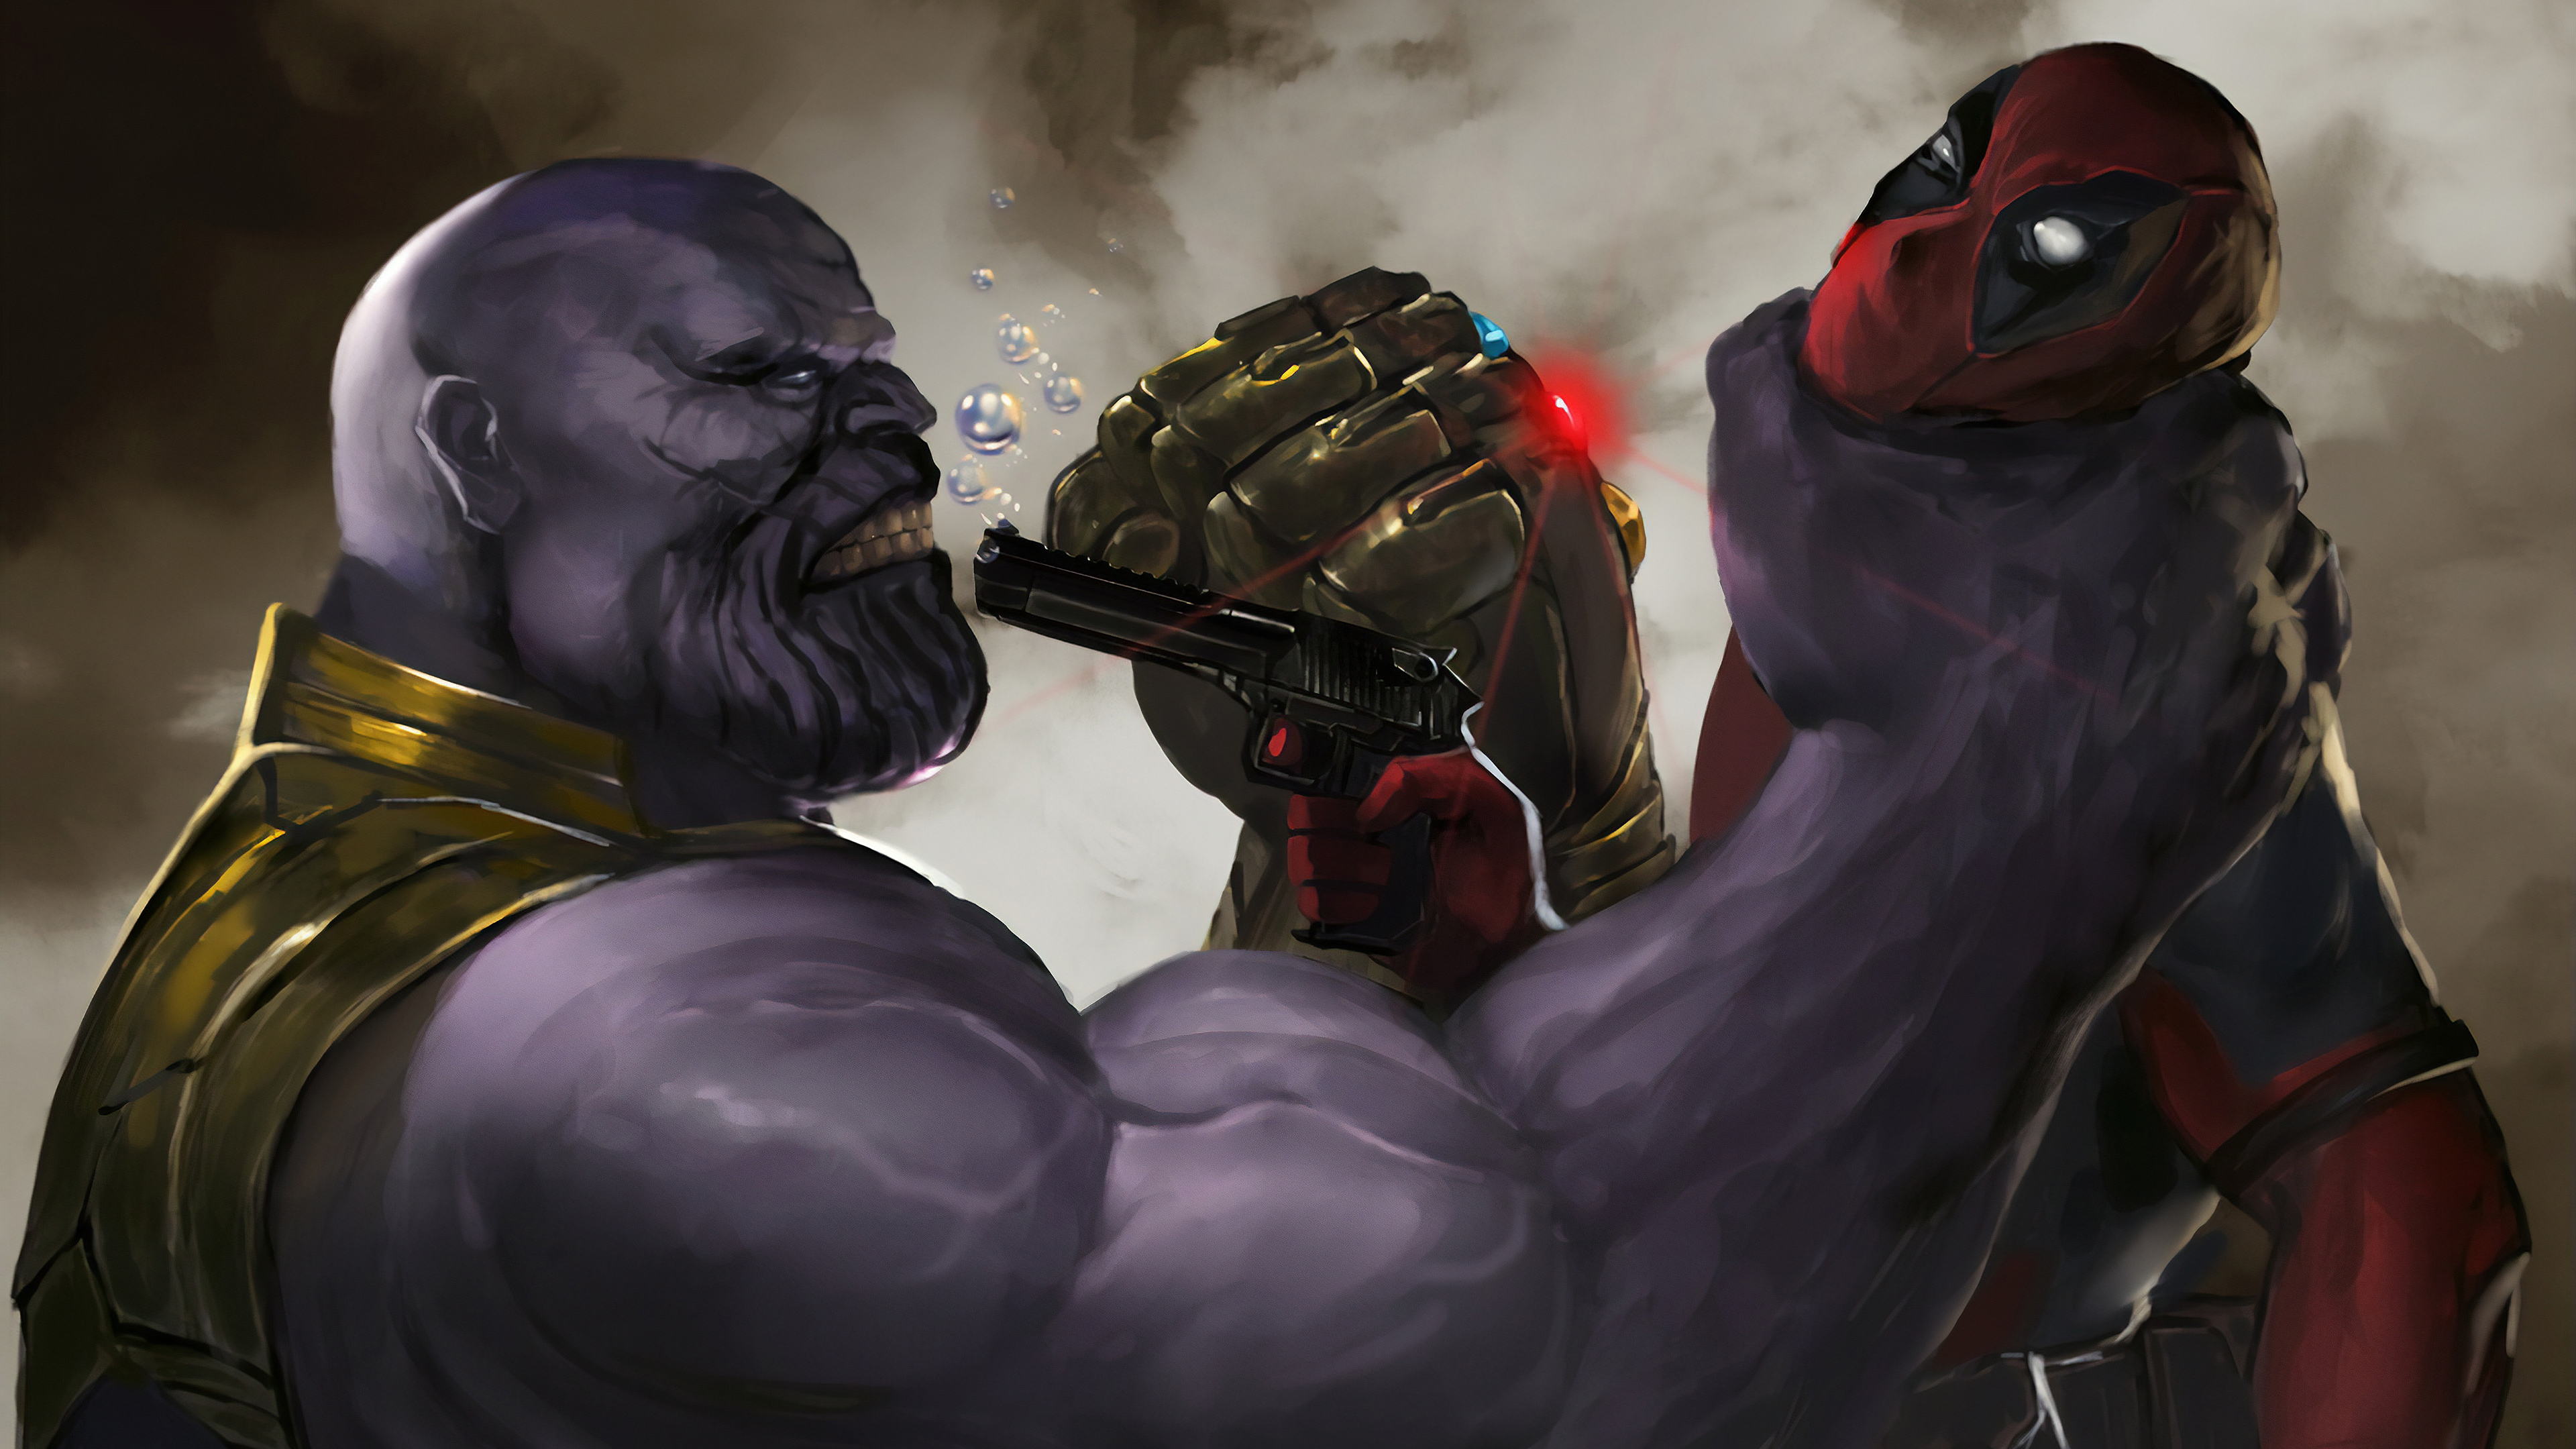 Wallpaper 4k Deadpool Vs Thanos Art 4k Wallpapers Artwork